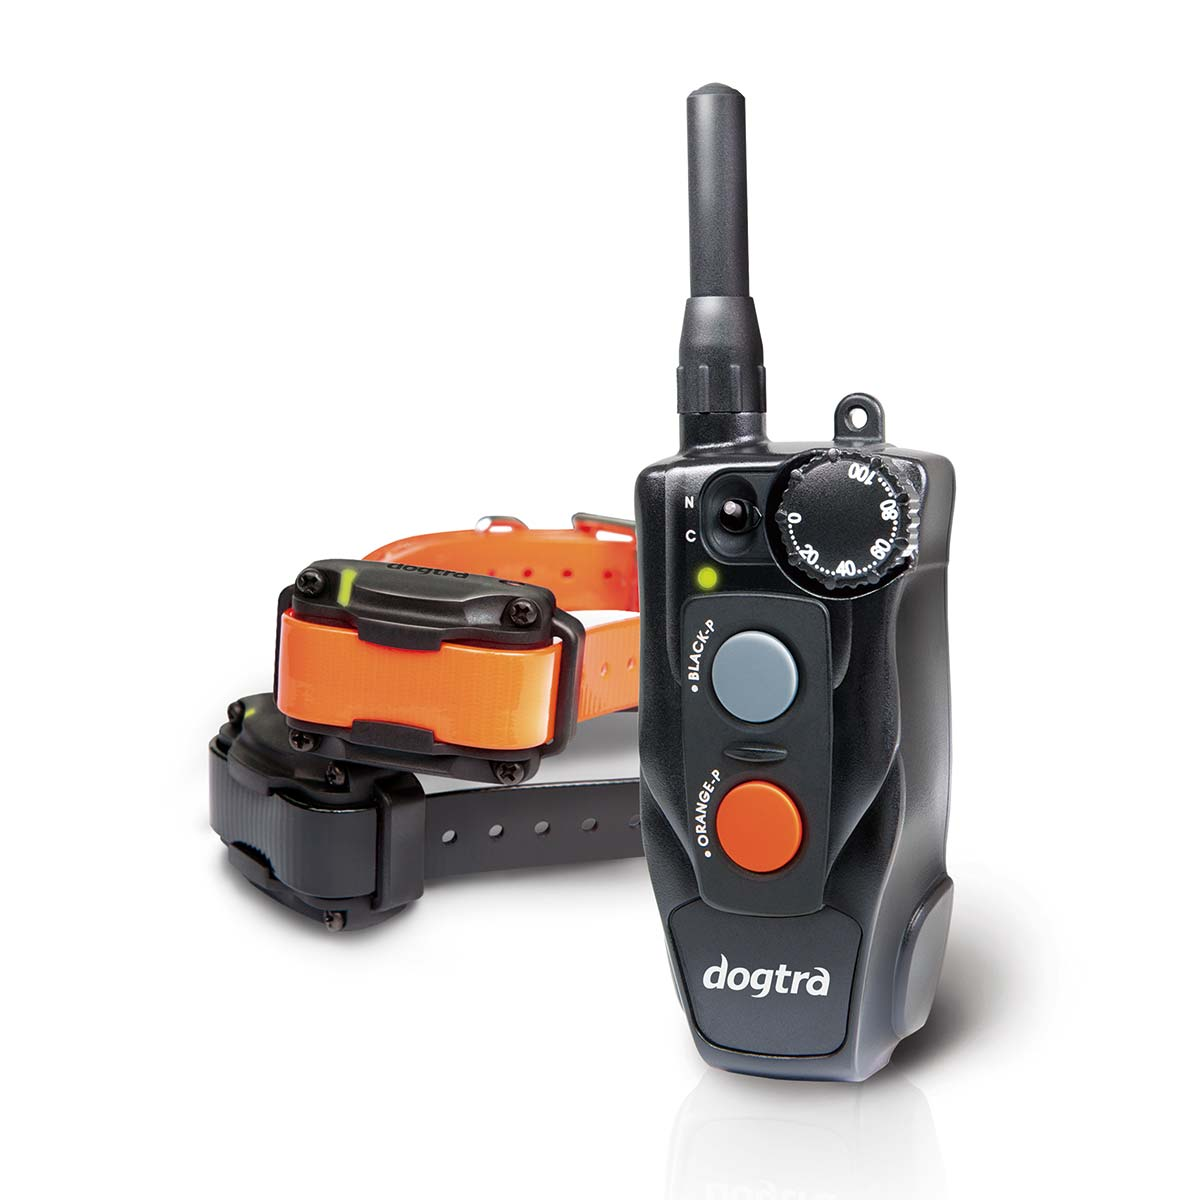 Dogtra Compact 1/2 Mile Remote Dog Trainer 2 Dog System Dog Training - London the Local